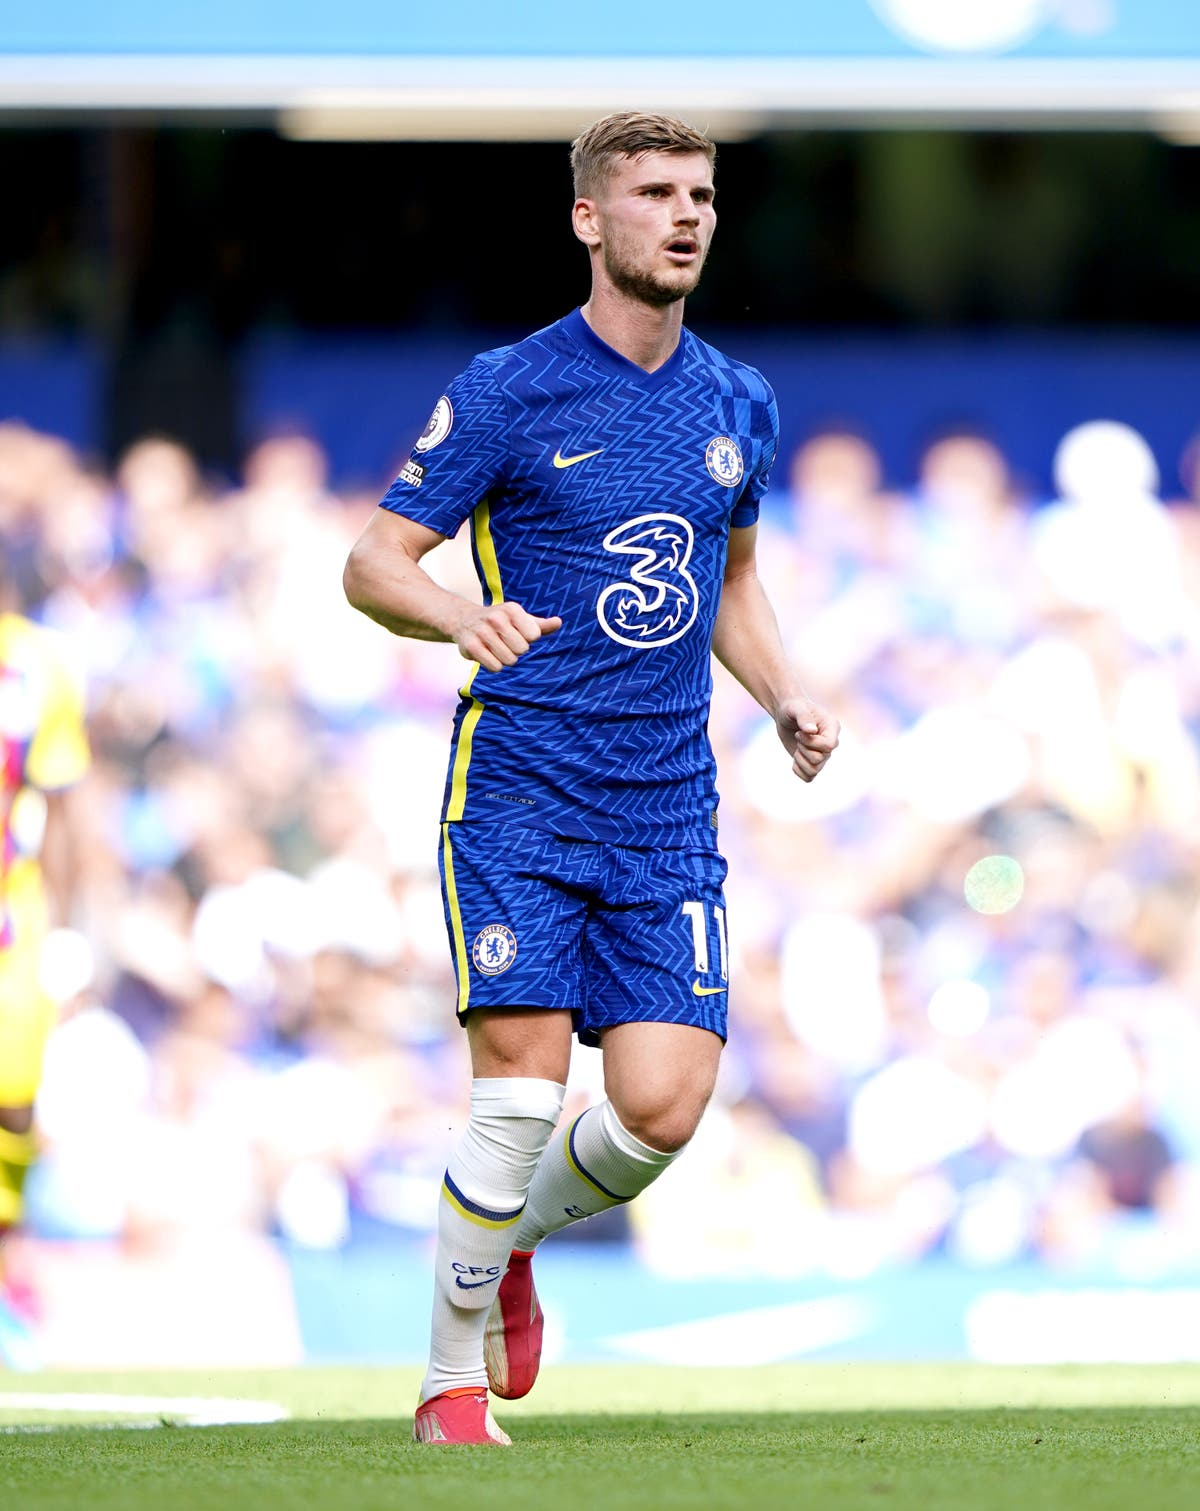 Timo Werner hopes his goal against Aston Villa puts him back on track at Chelsea